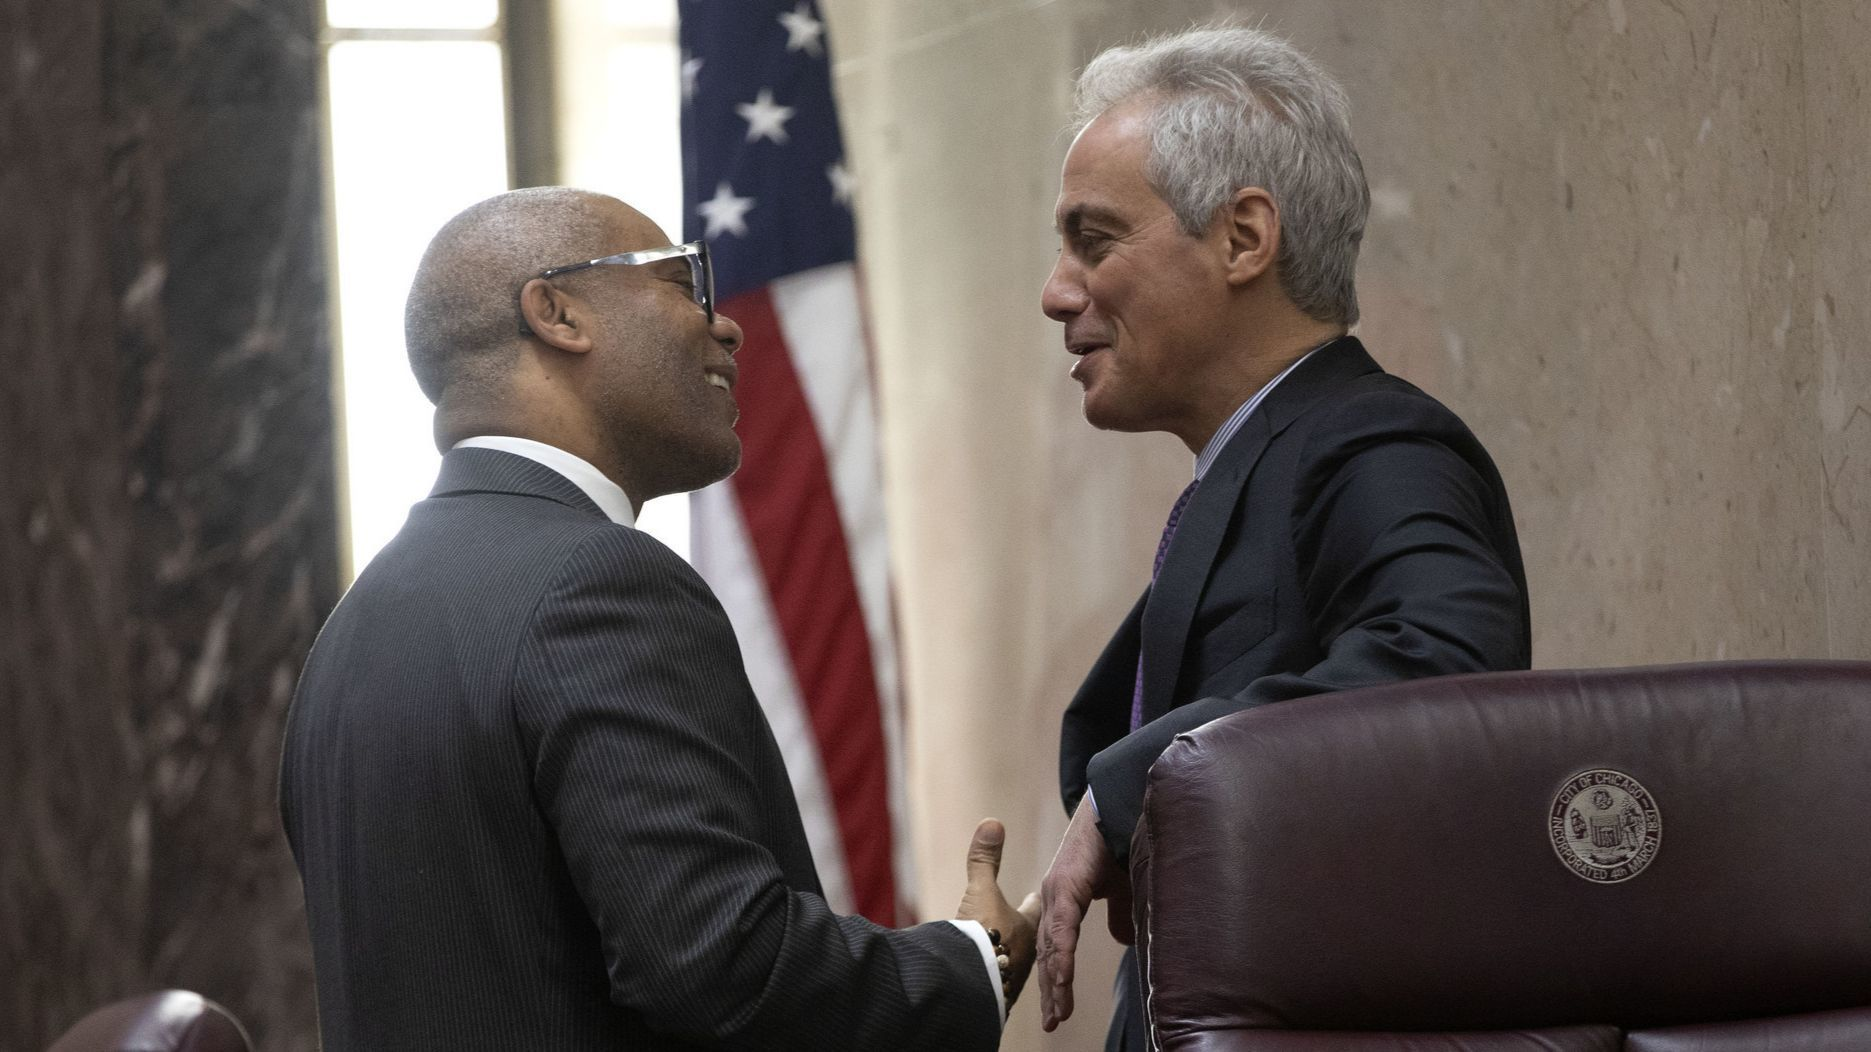 Mayor Rahm Emanuel says 'no friend gets left on the field,' but checks didn't pay off for all those he tried helping